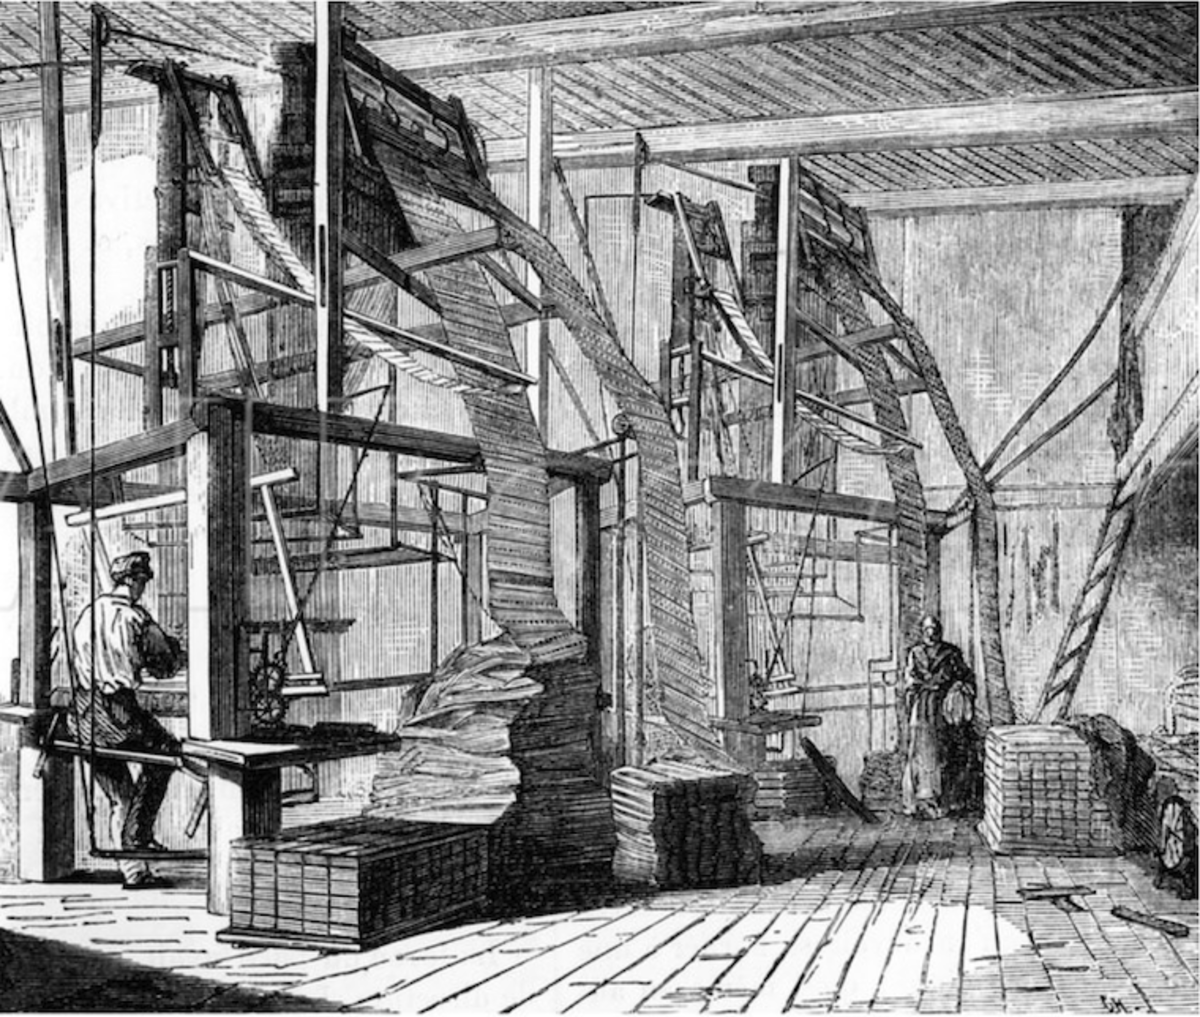 Silk weavers using a Jacquard Loom. The mechanism with the rows of hole punched cards that sits on top of the loom is Jacquard's ingenious invention. 19th Century Engraving in the Public Domain. From The Bridgeman Art Library collection.